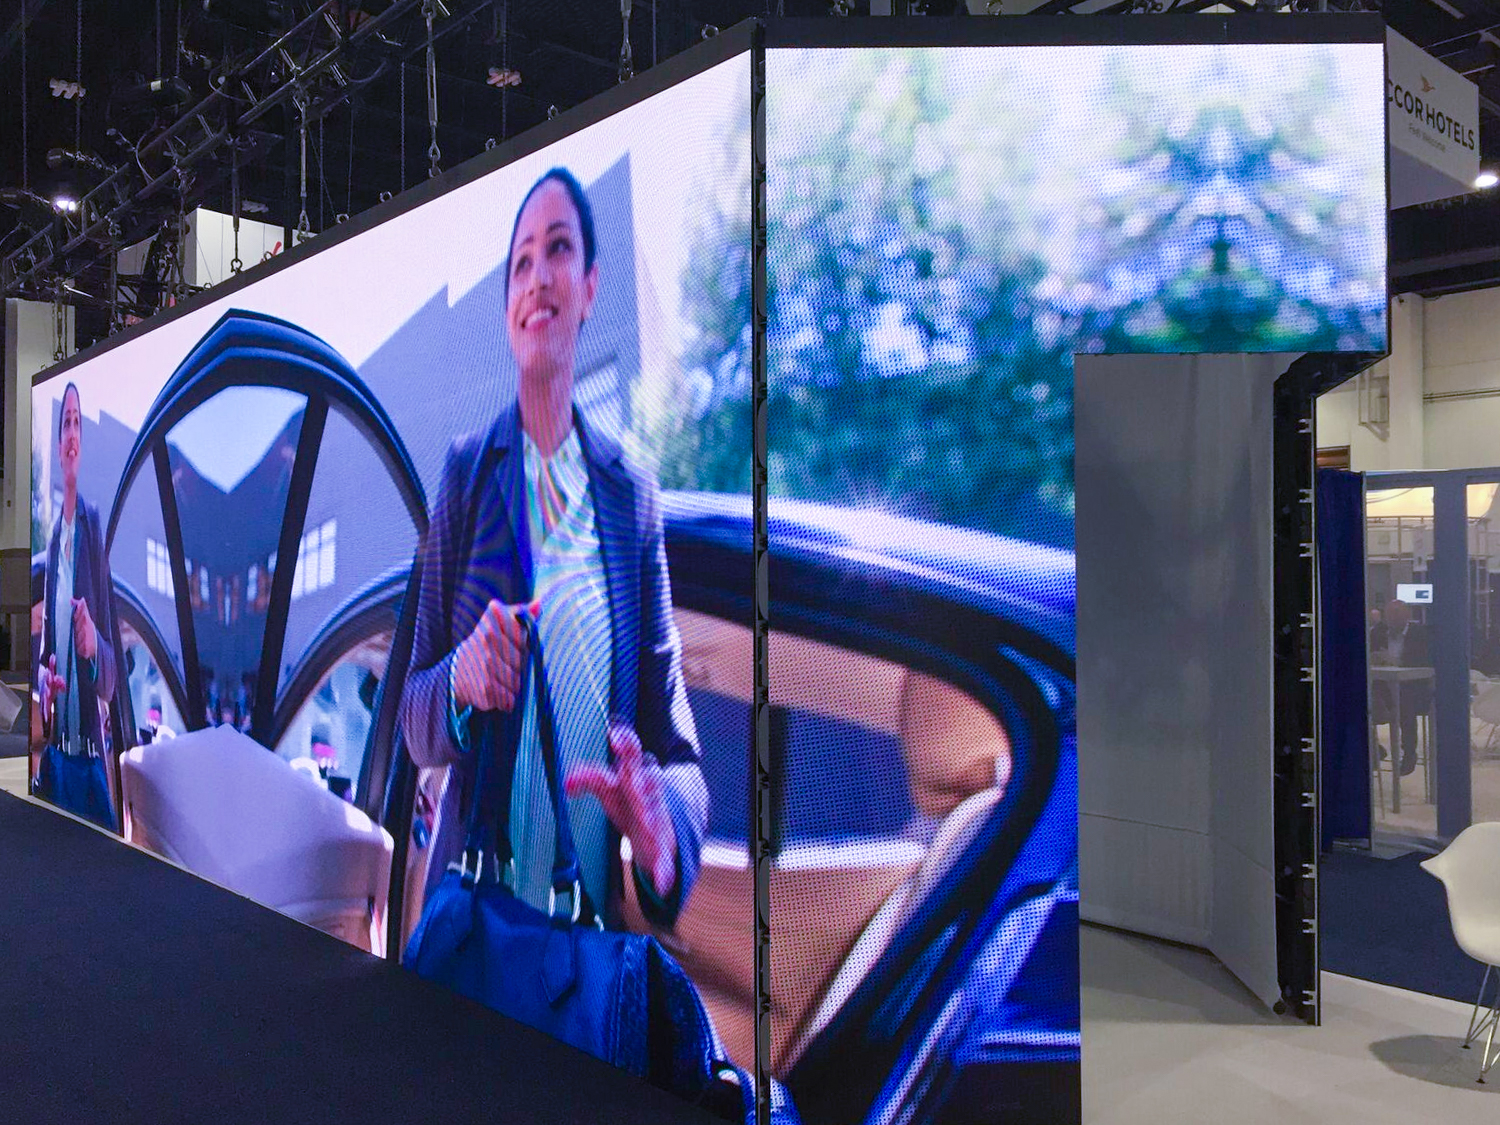 Our booth gave visitors an immersive ridesharing experience with videos on 40' LED screens.